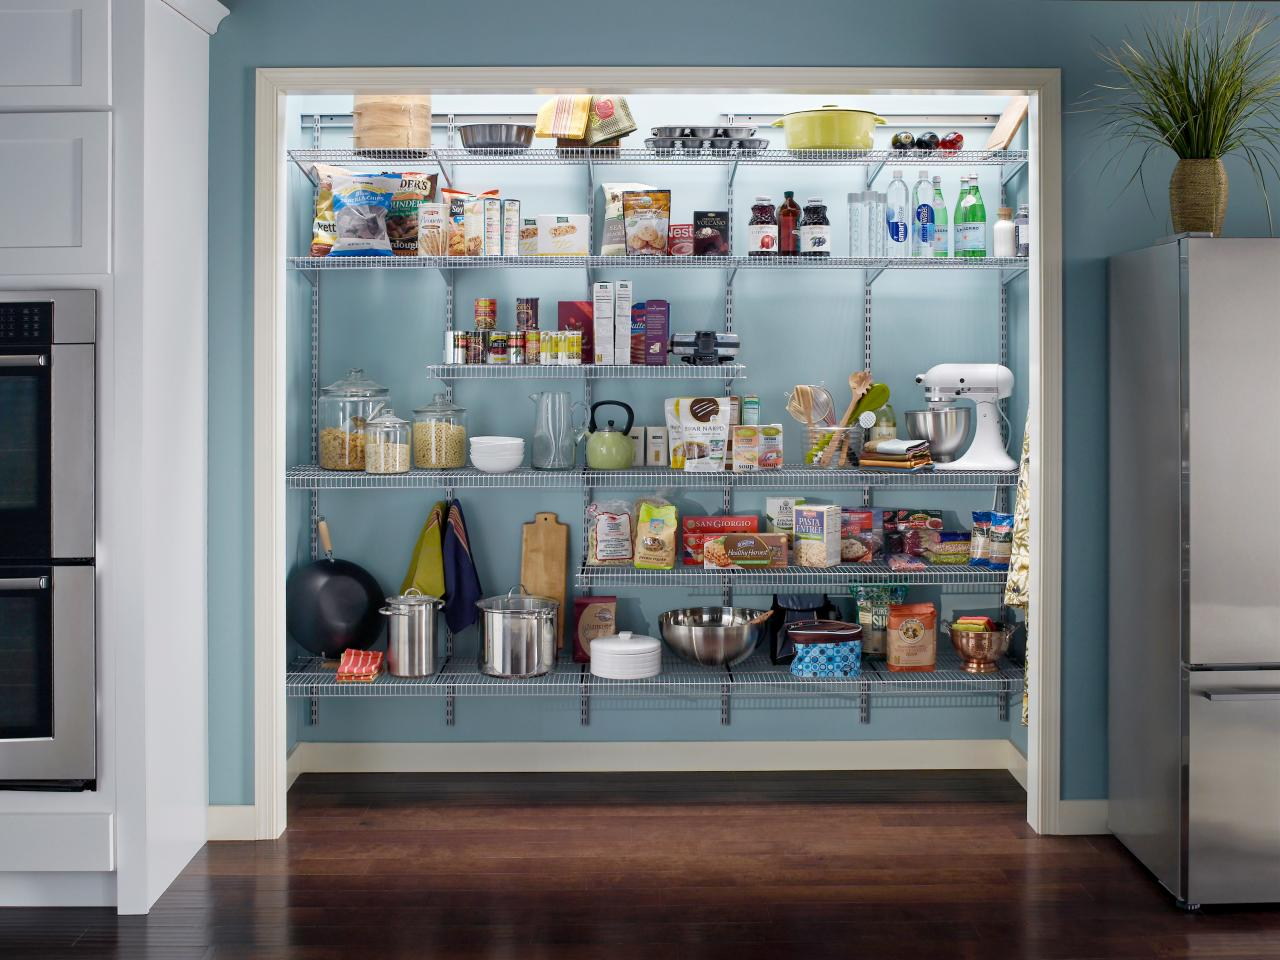 Elegant Adjustable Wire Shelving Is An Inexpensive Product For Customizing Your  Pantry Space.